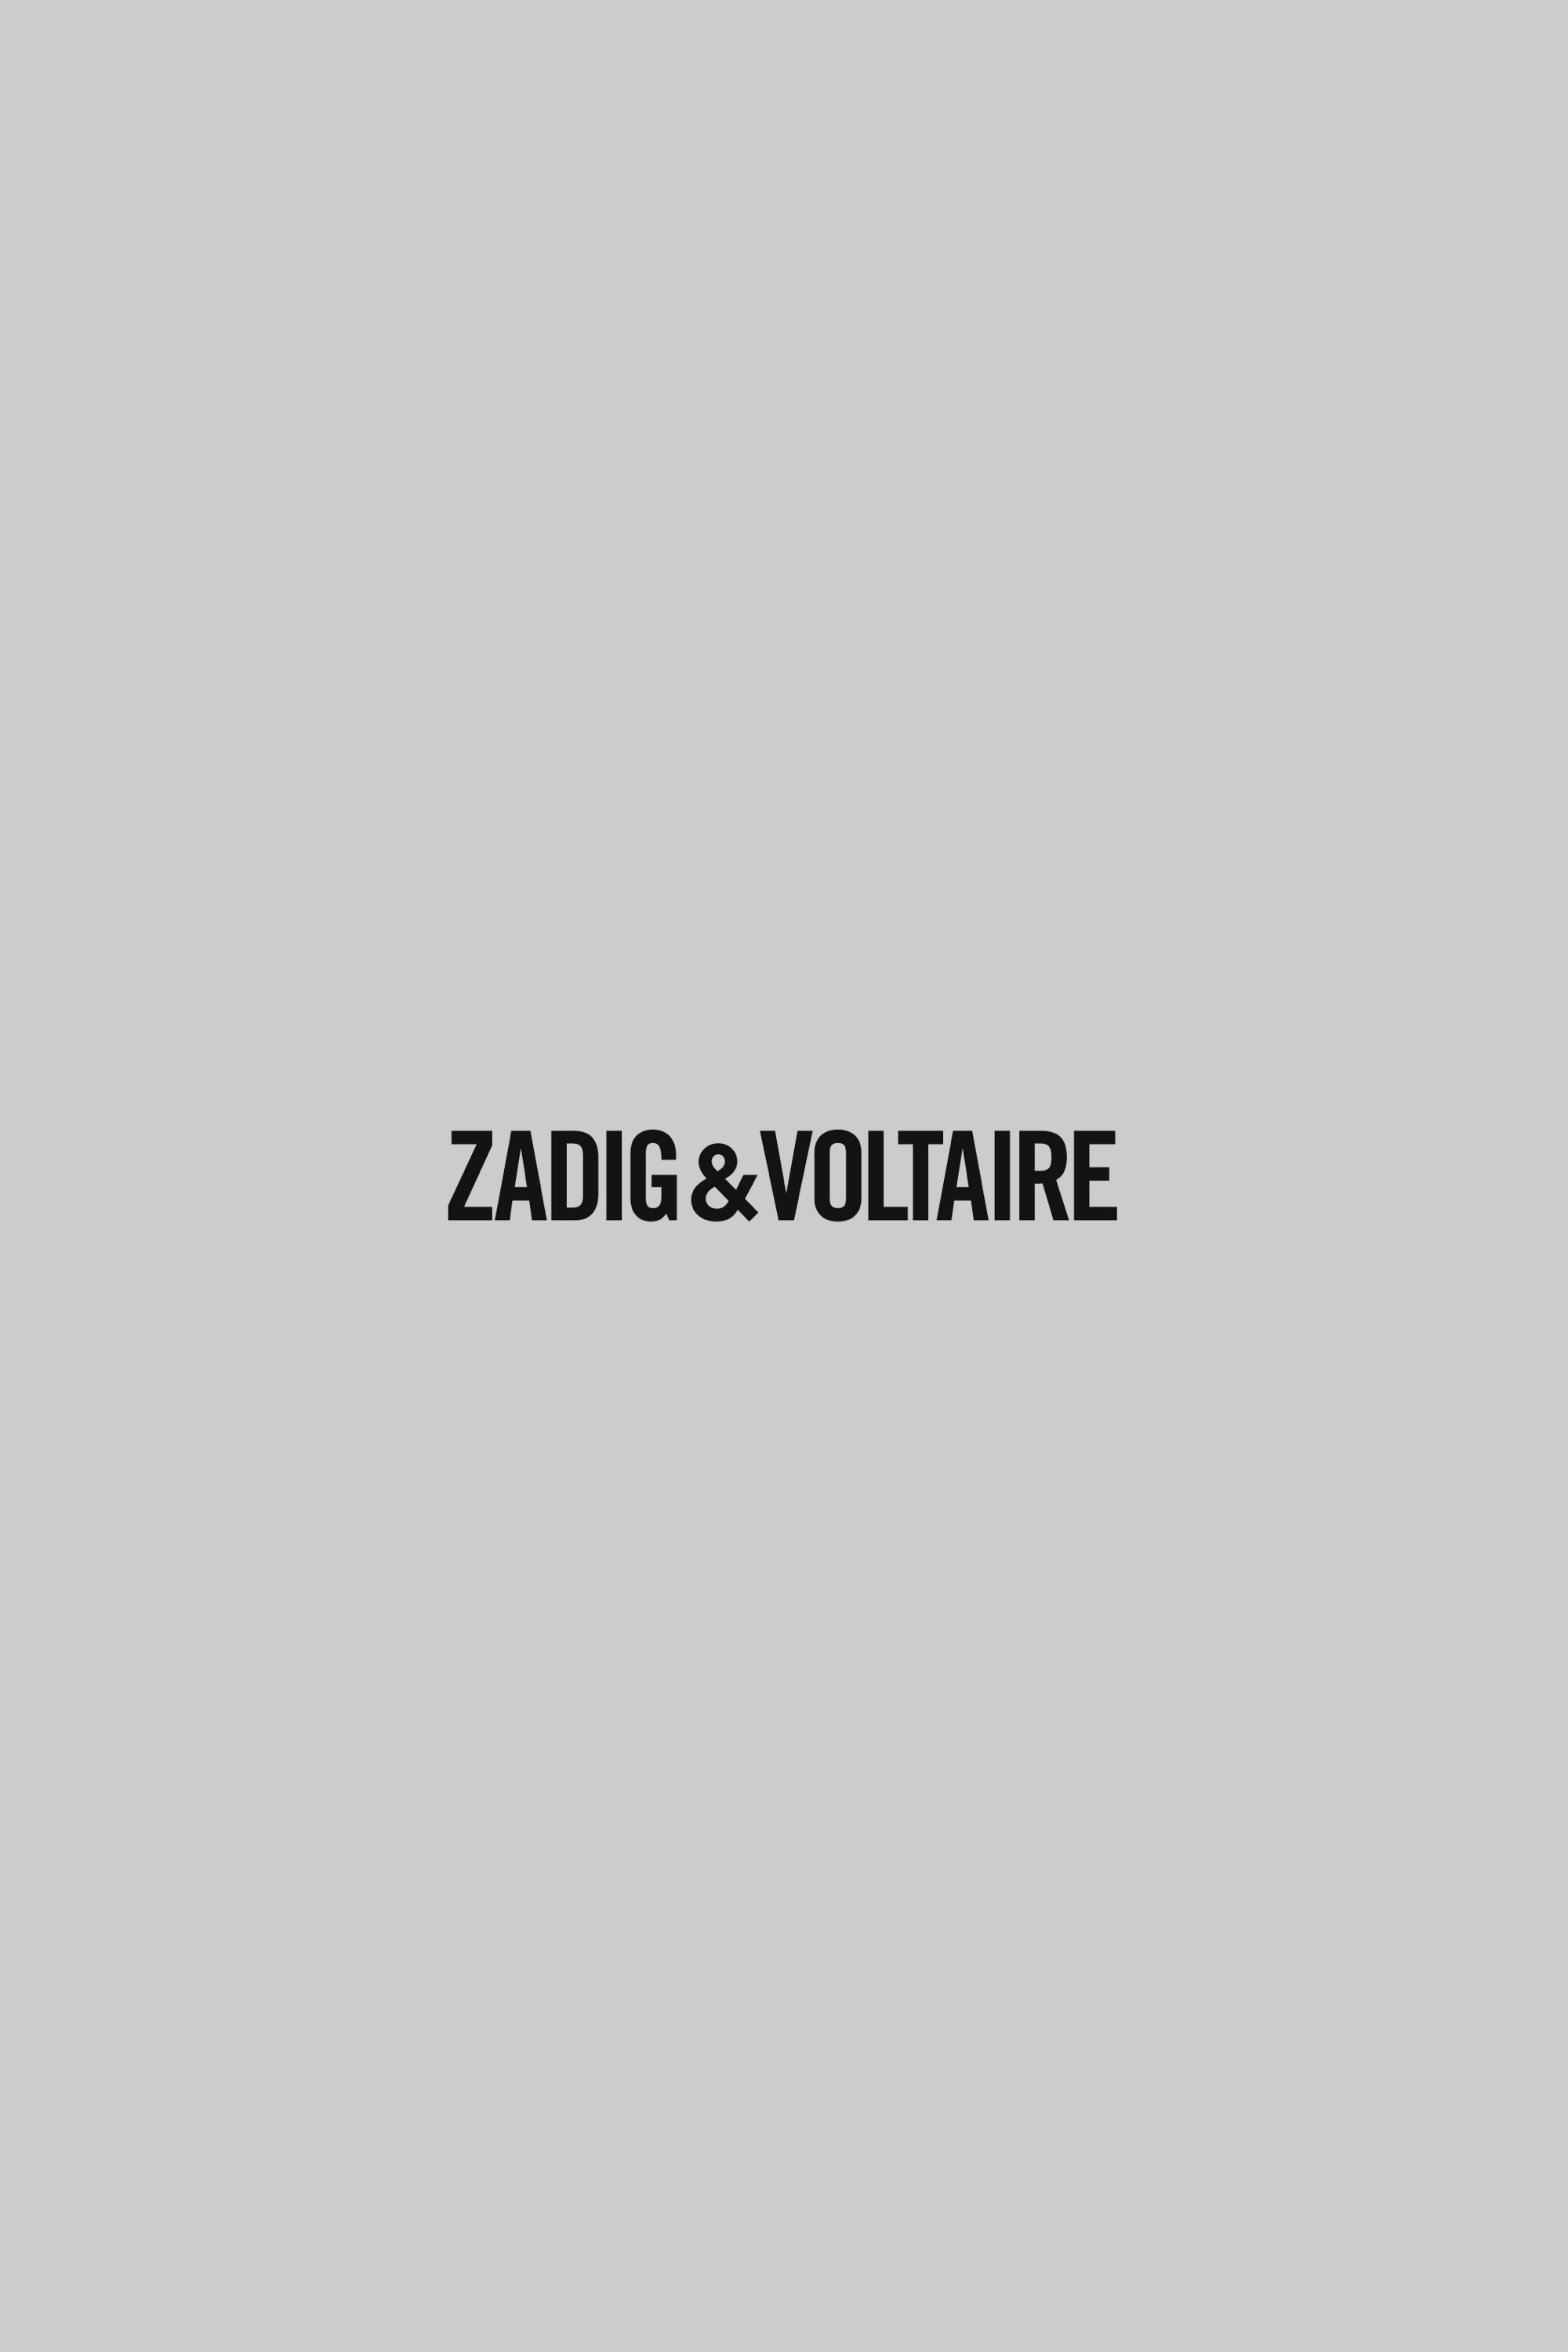 black single women in voltaire Zadig and voltaire fur vest bags shoulder & hobo bags leather ,zadig & voltaire rock clutch black women zadig & voltaire bag,on sale designed with the logo, the rock clutch is a must-have from zadig & voltaire.